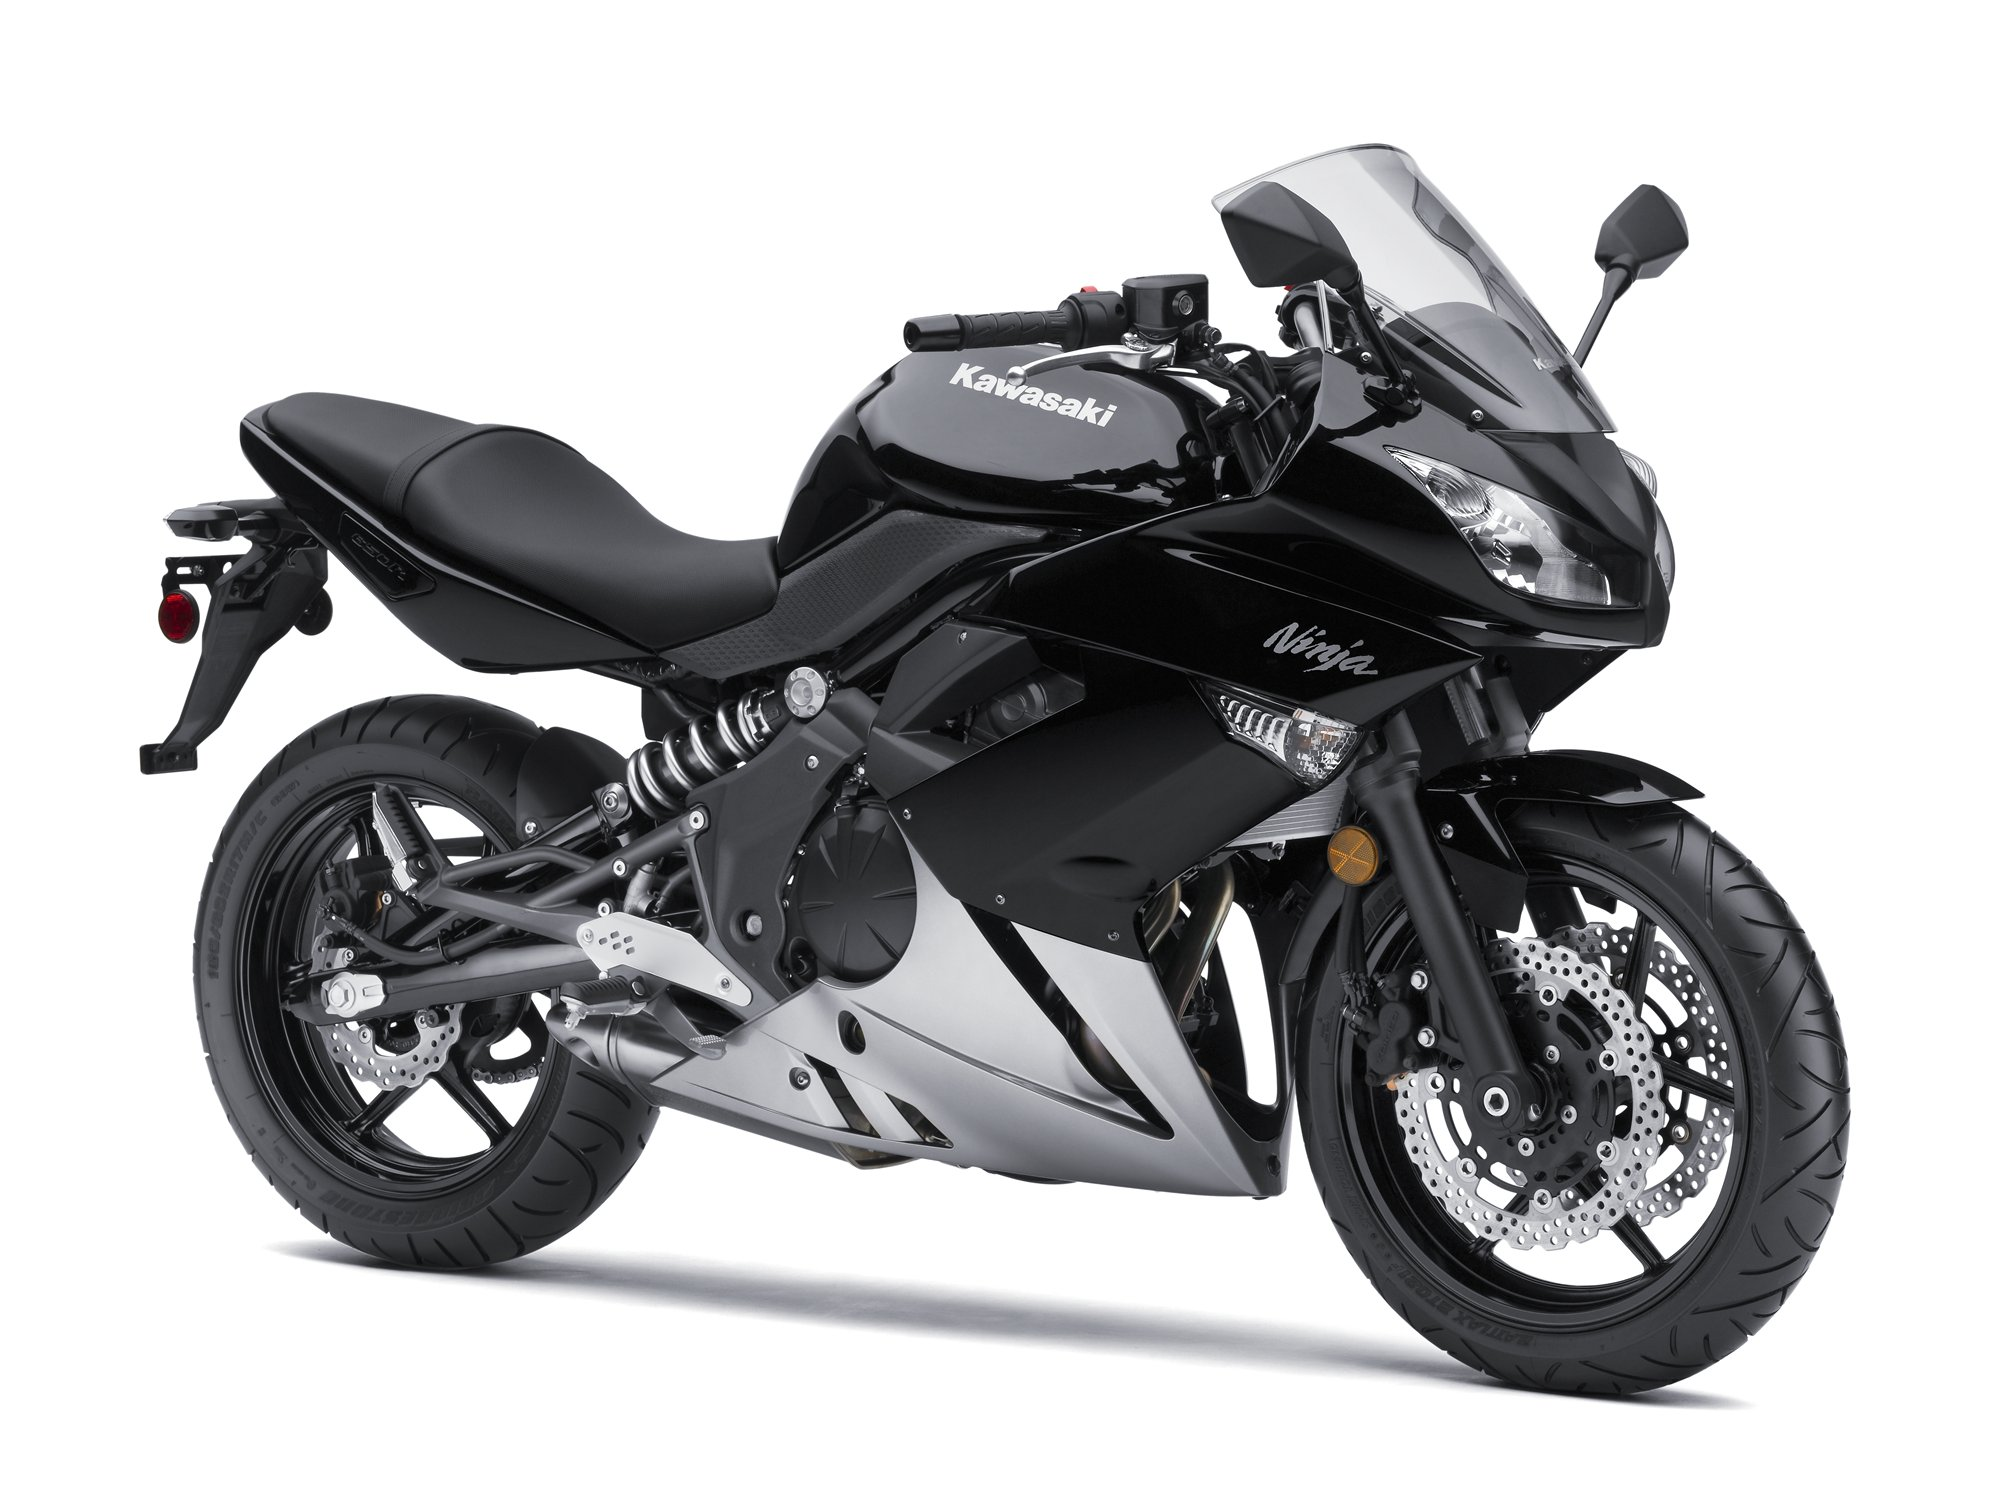 2010 Kawasaki Ninja 650R | Top Speed